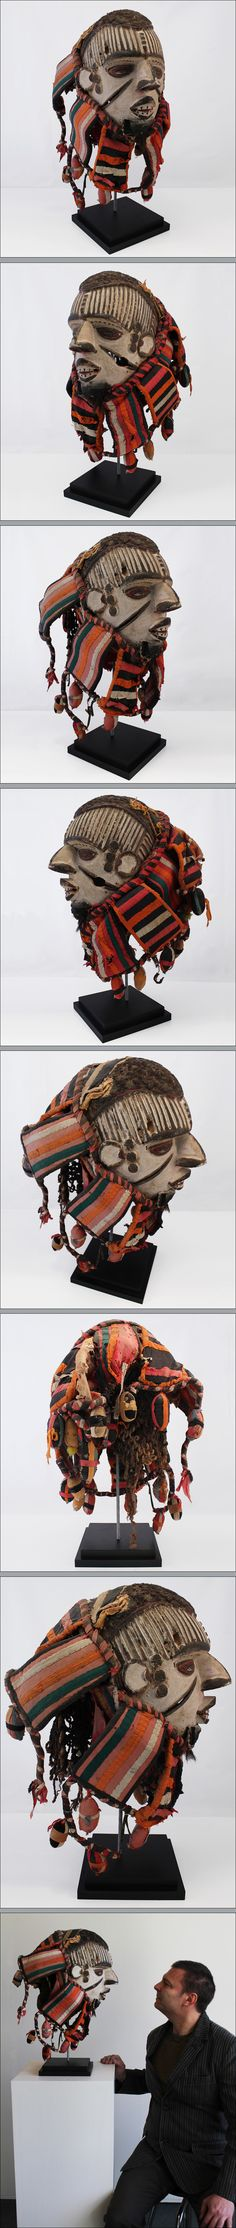 Helmet mask, Igbo, Nigeria. Very colorful helmet mask of a male from the Igbo people of Nigera. It's powerful in form and whitened with a t...